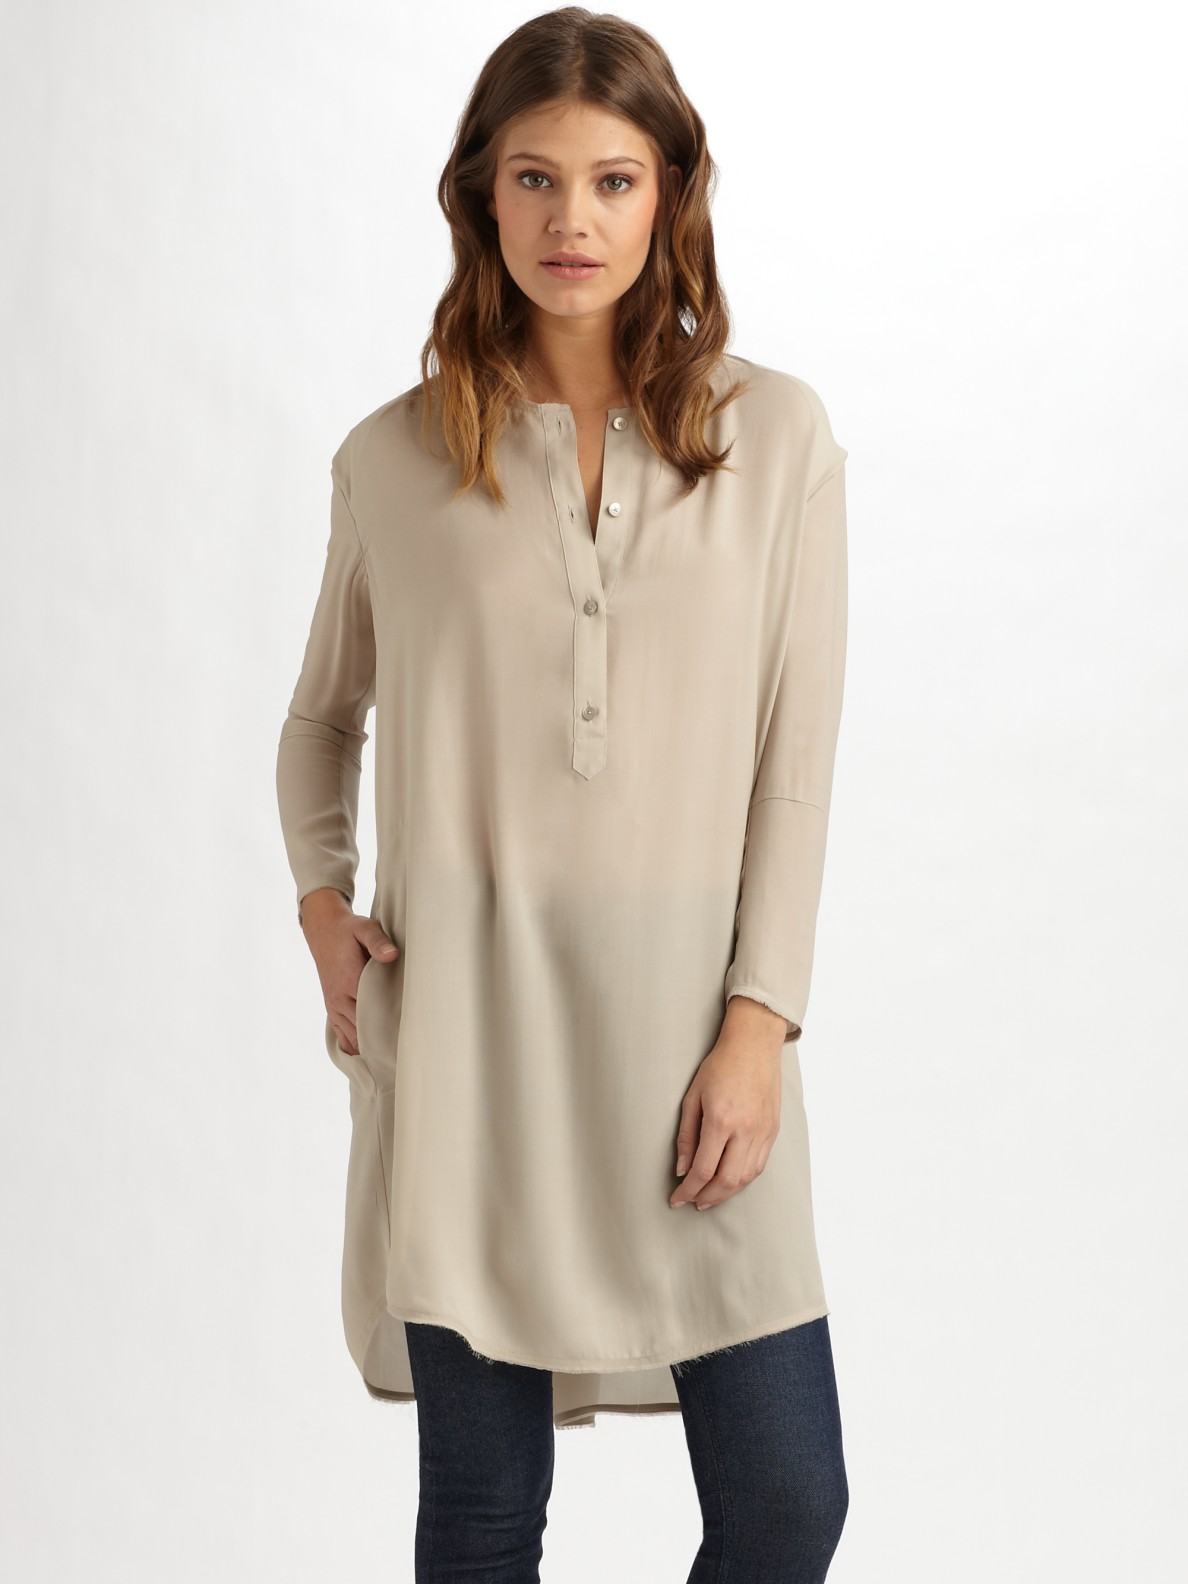 Lyst - Acne Studios Silk Tunic Top in Natural